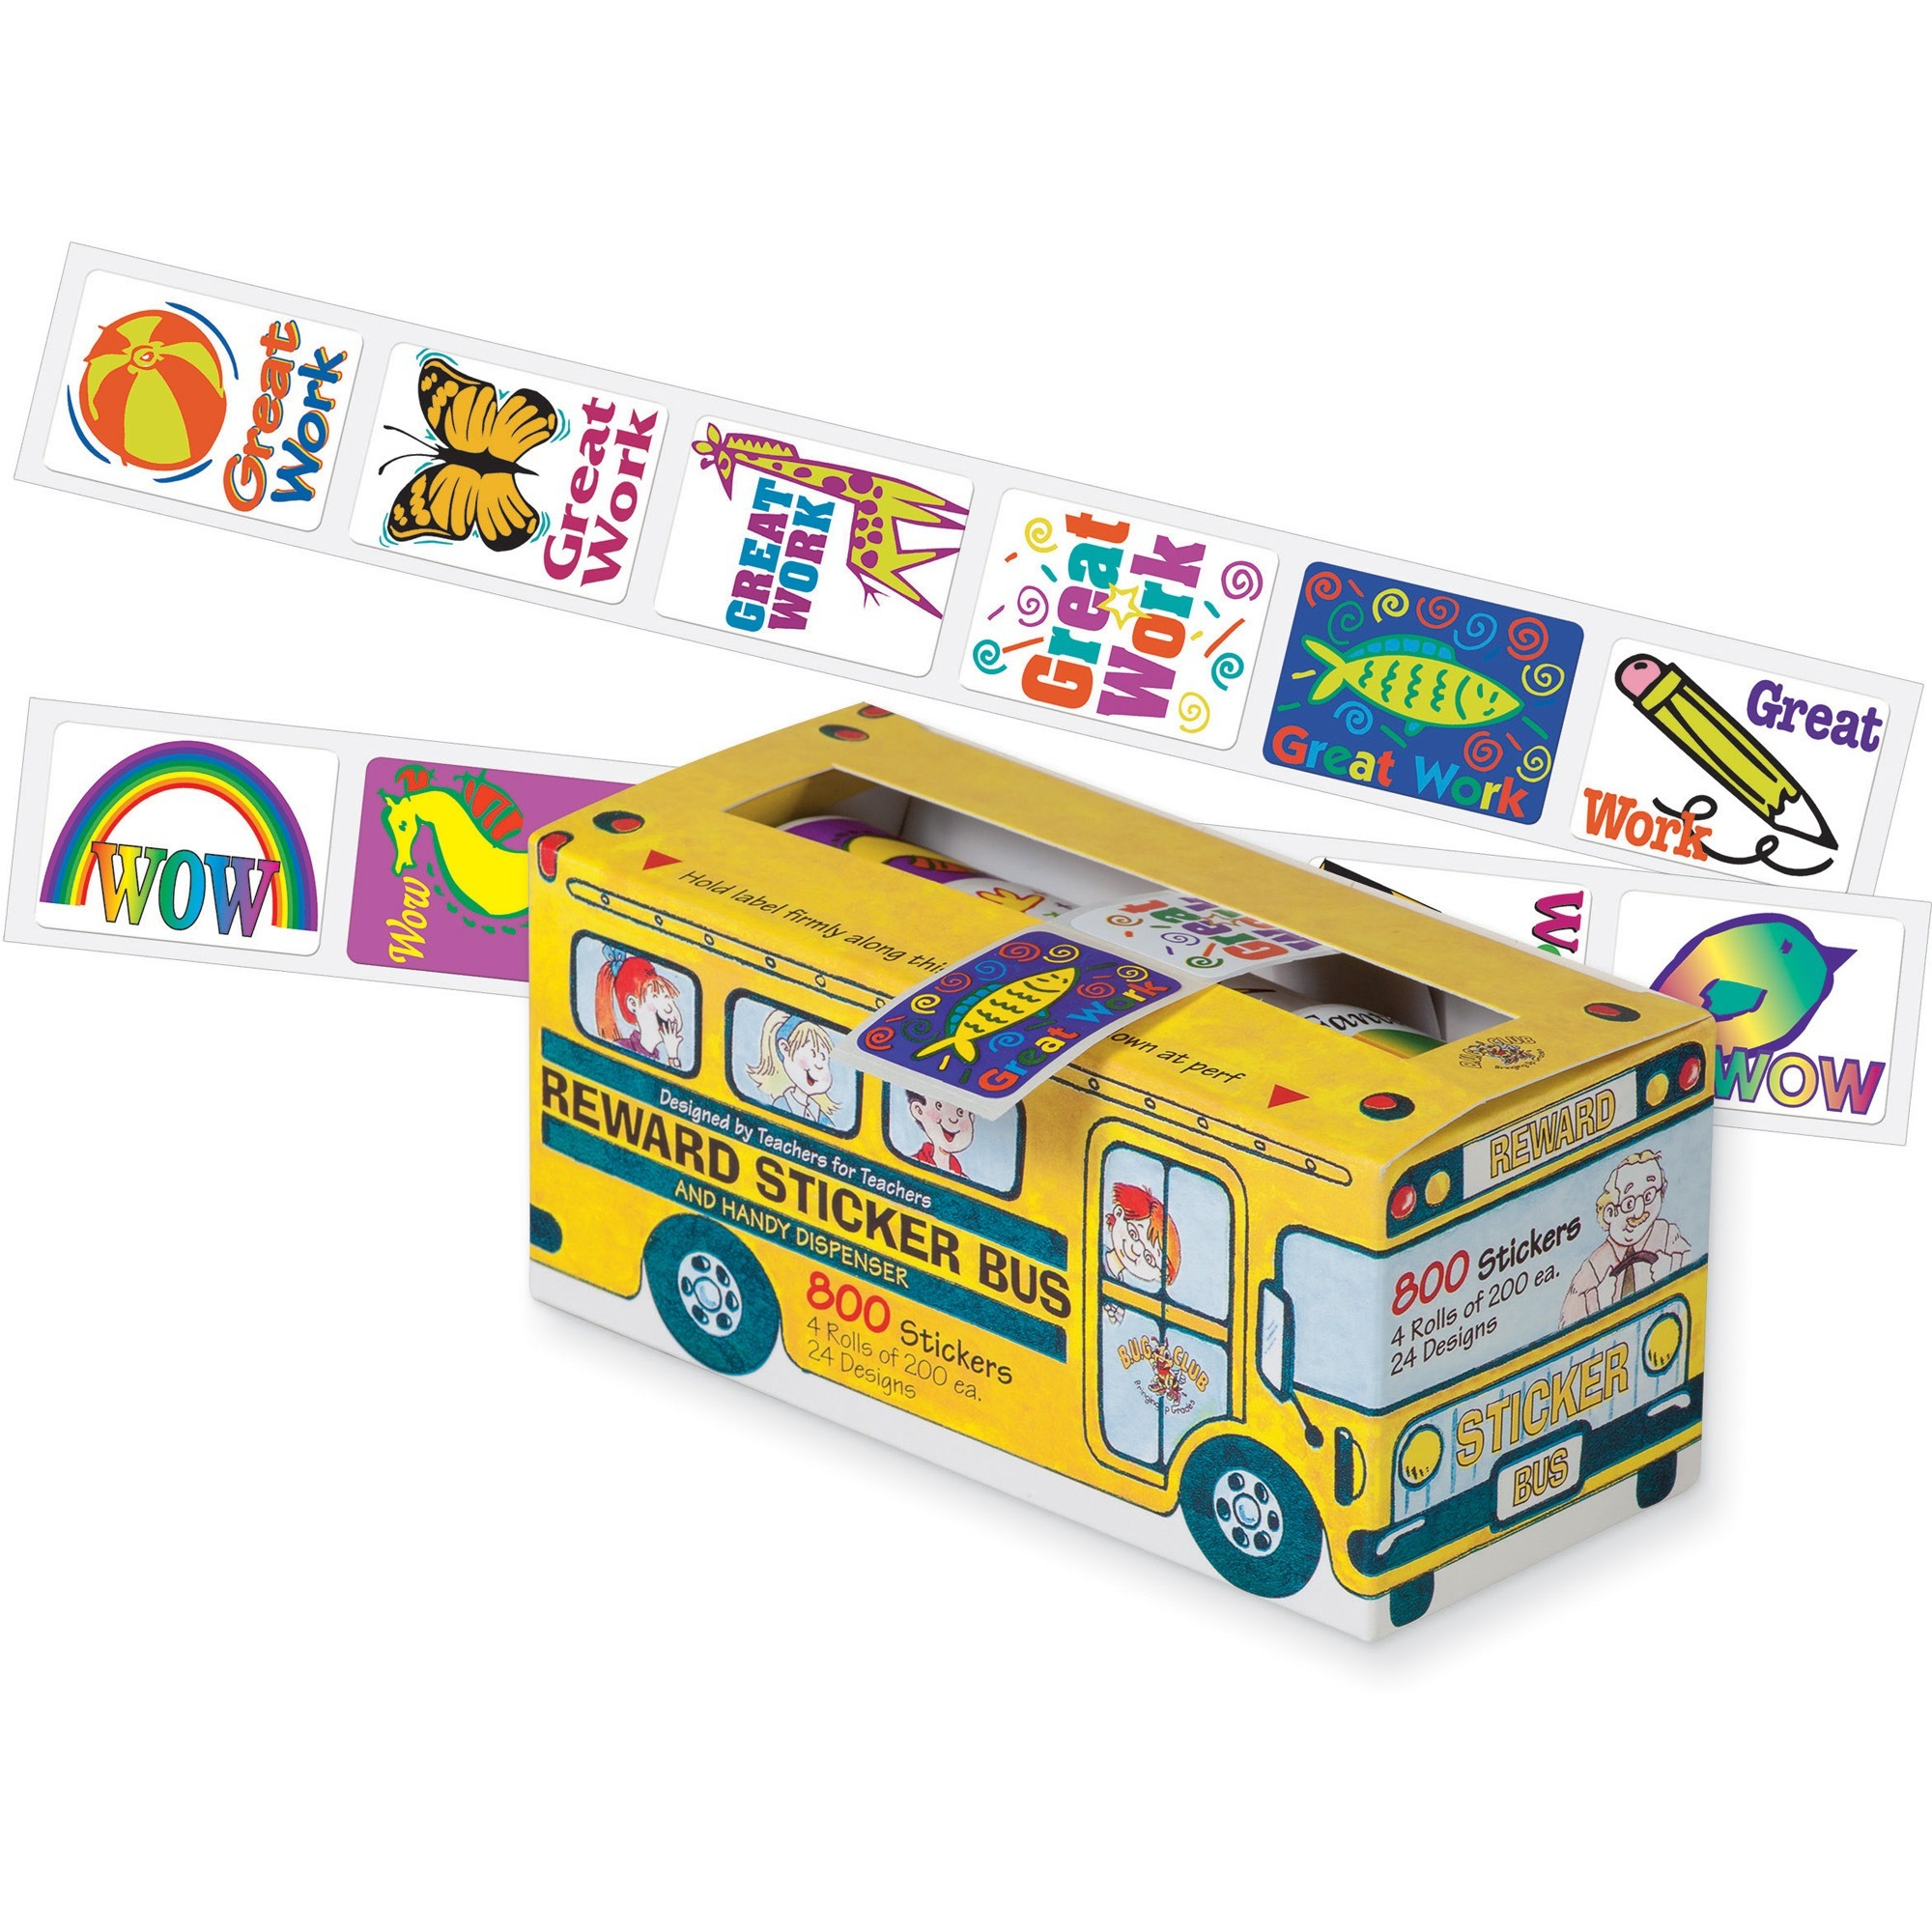 Pacon, PAC51450, Self-adhesive School Bus Rewards Stickers, 800 / Pack, Assorted